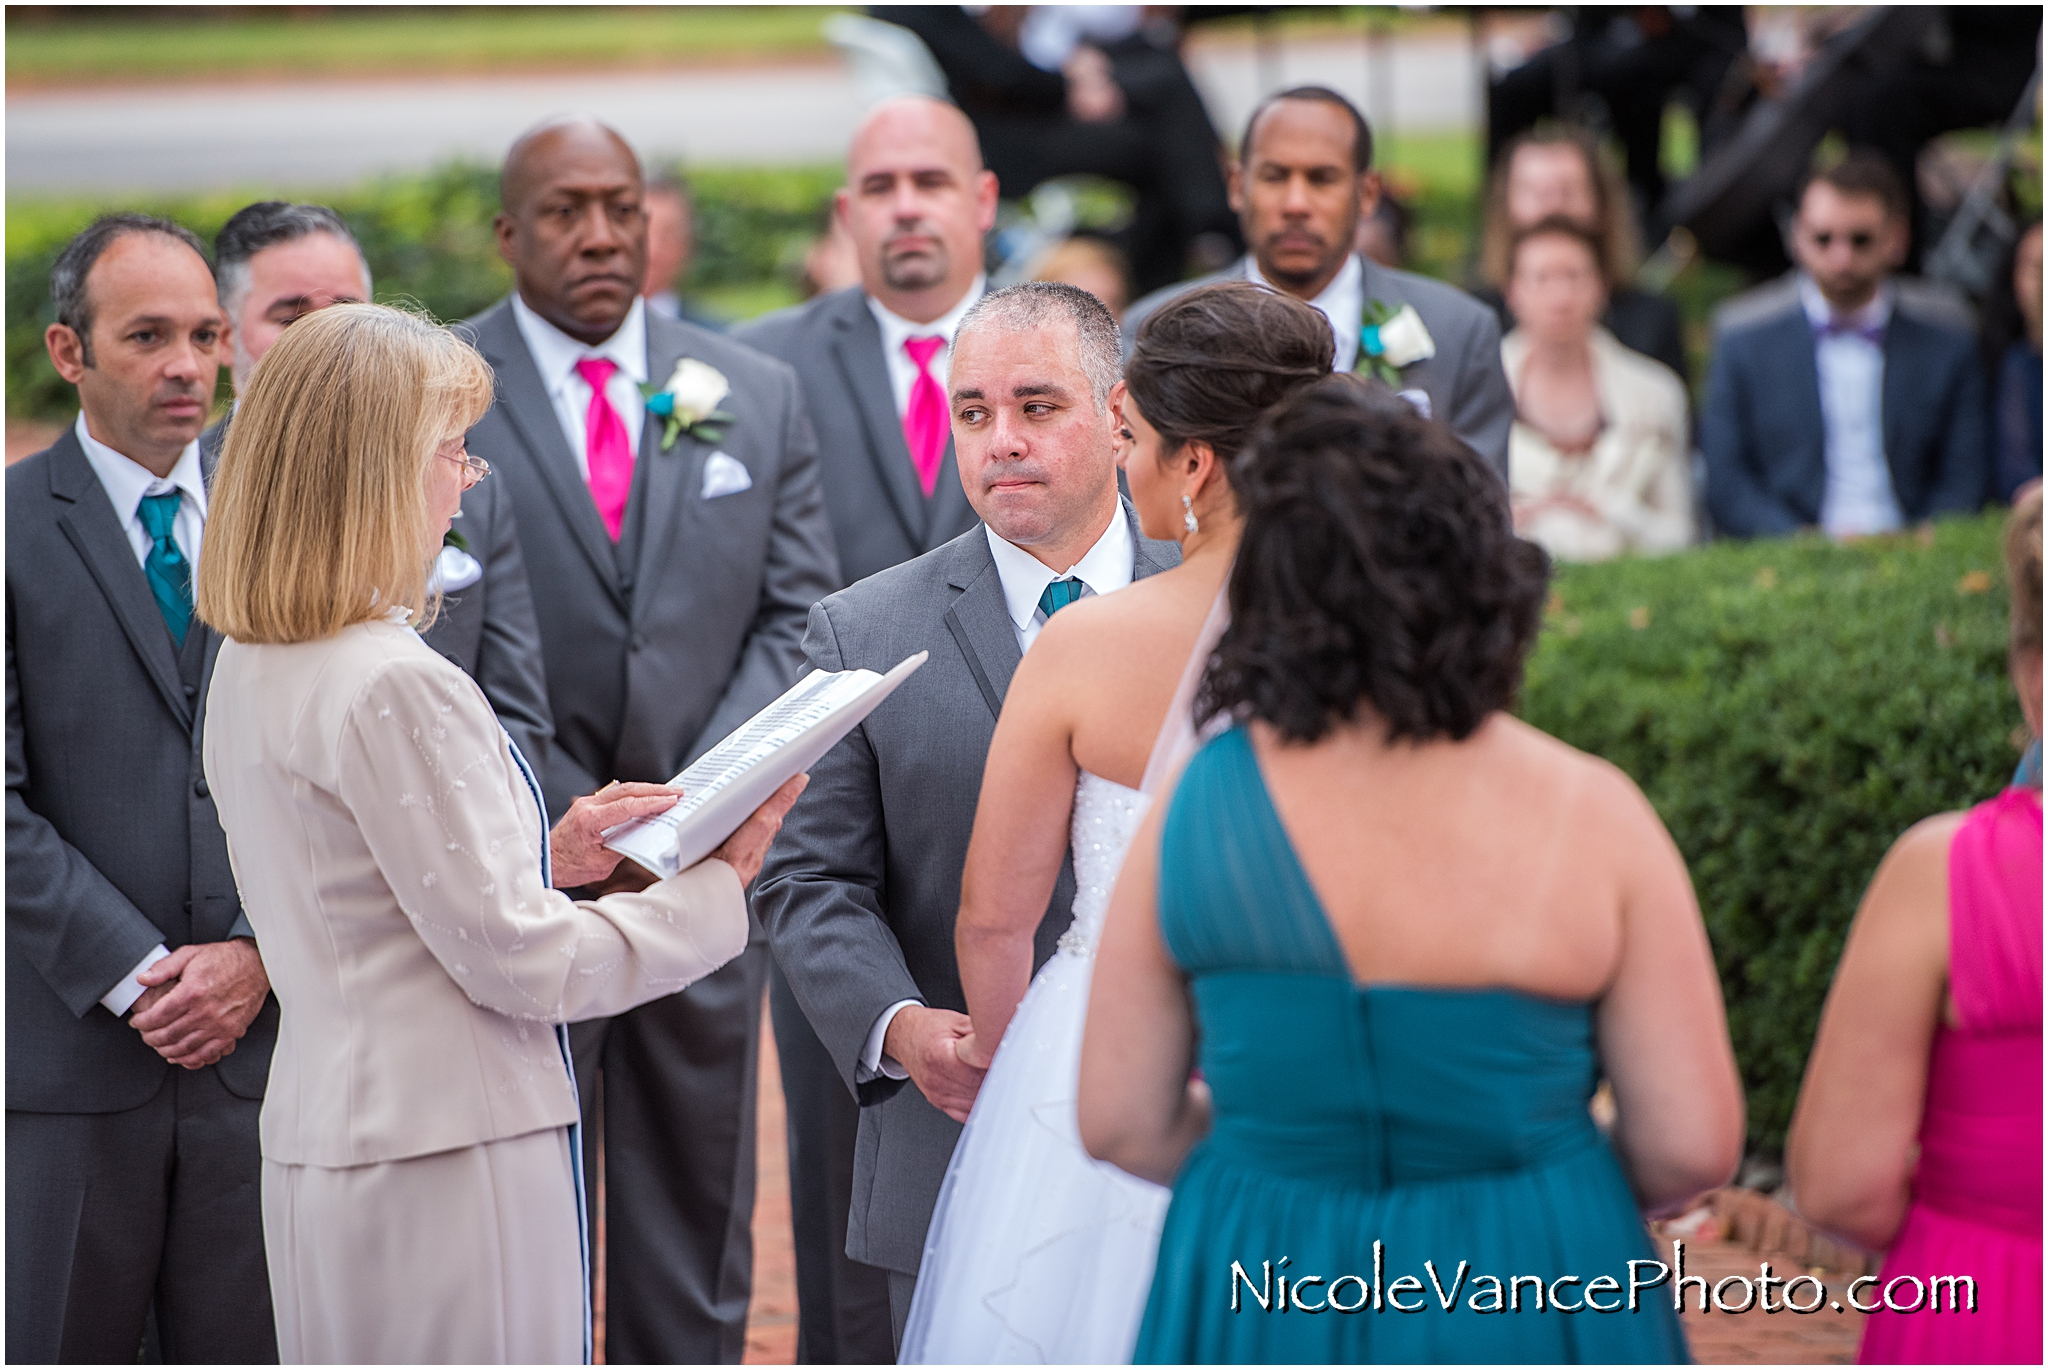 Wedding ceremony at Virginia Crossings.